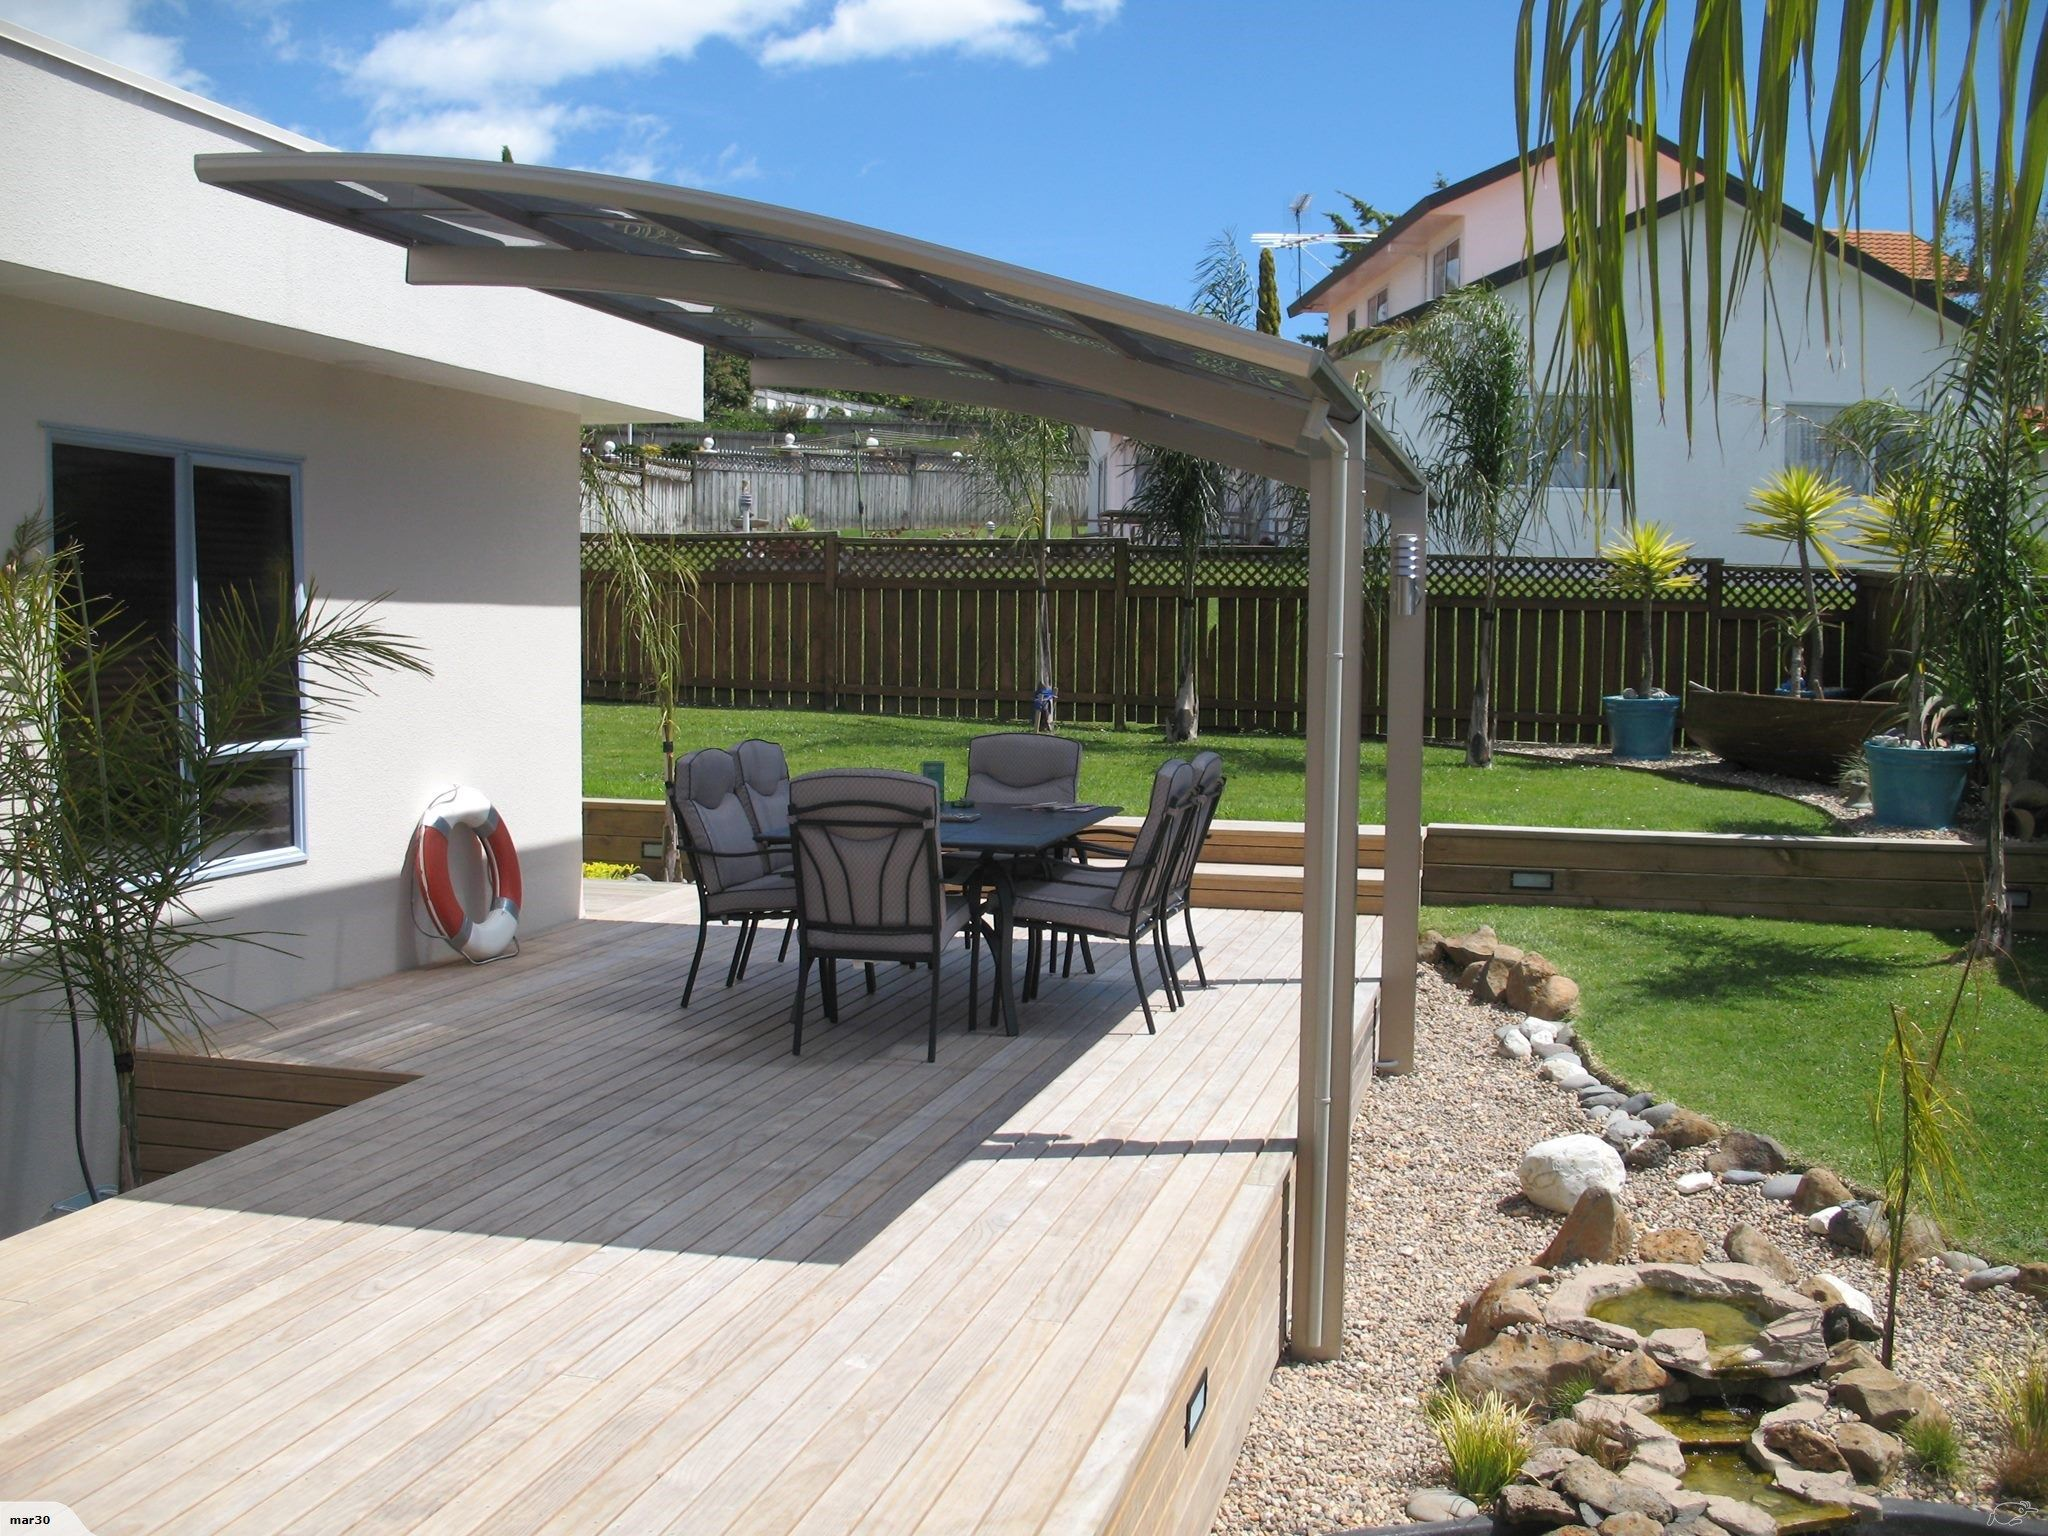 Cantilever Patio Cover Carport Made In Japan Uniport